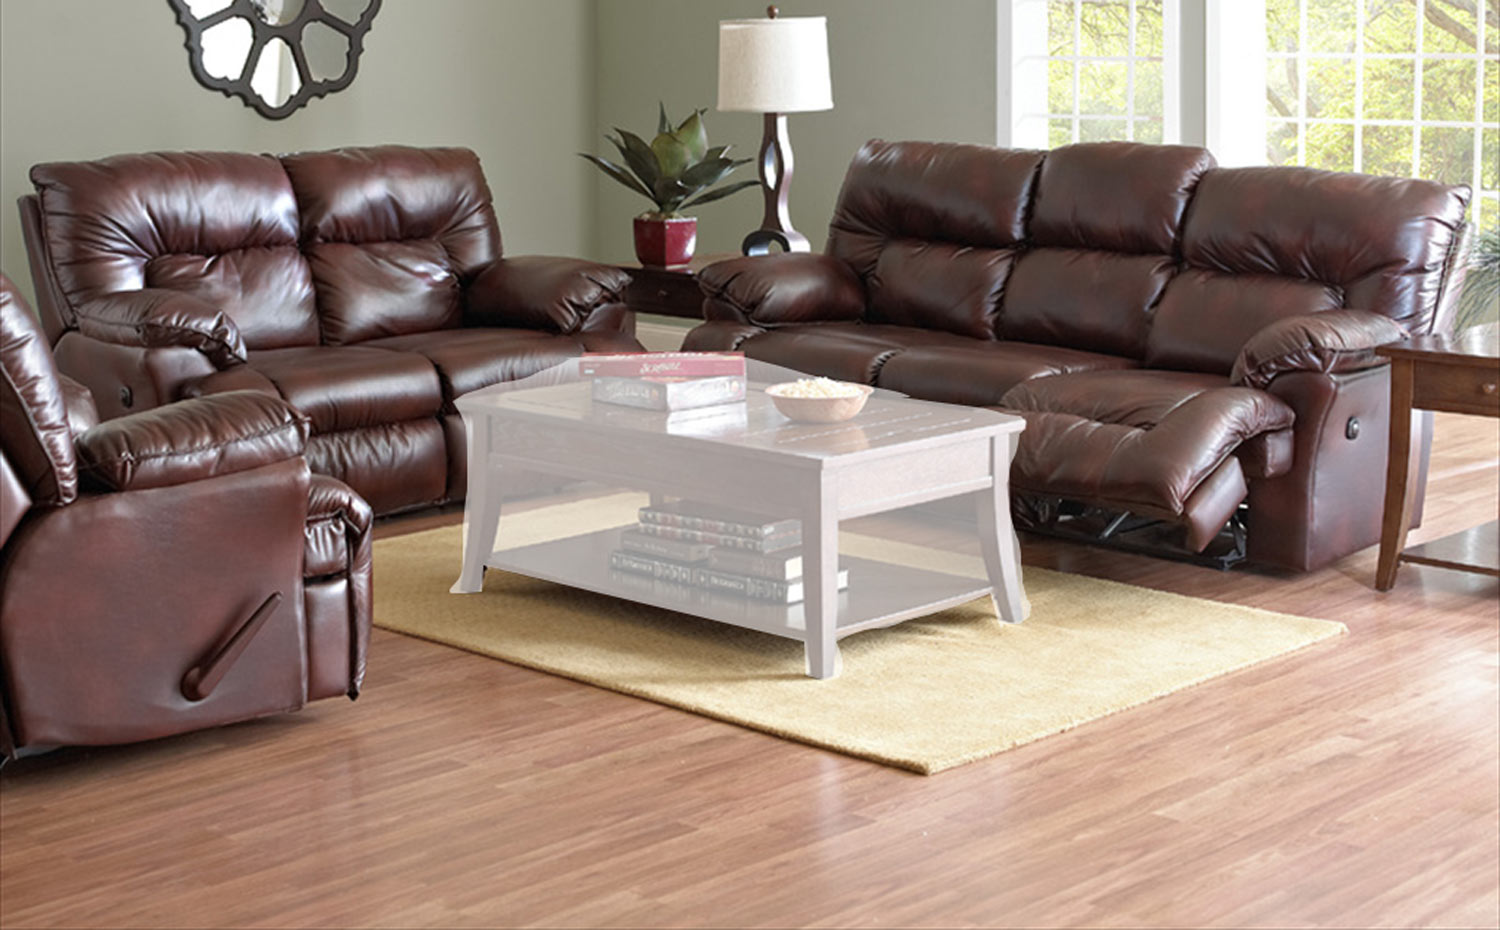 Klaussner Laramie Reclining Sofa Set Raleigh Tobacco